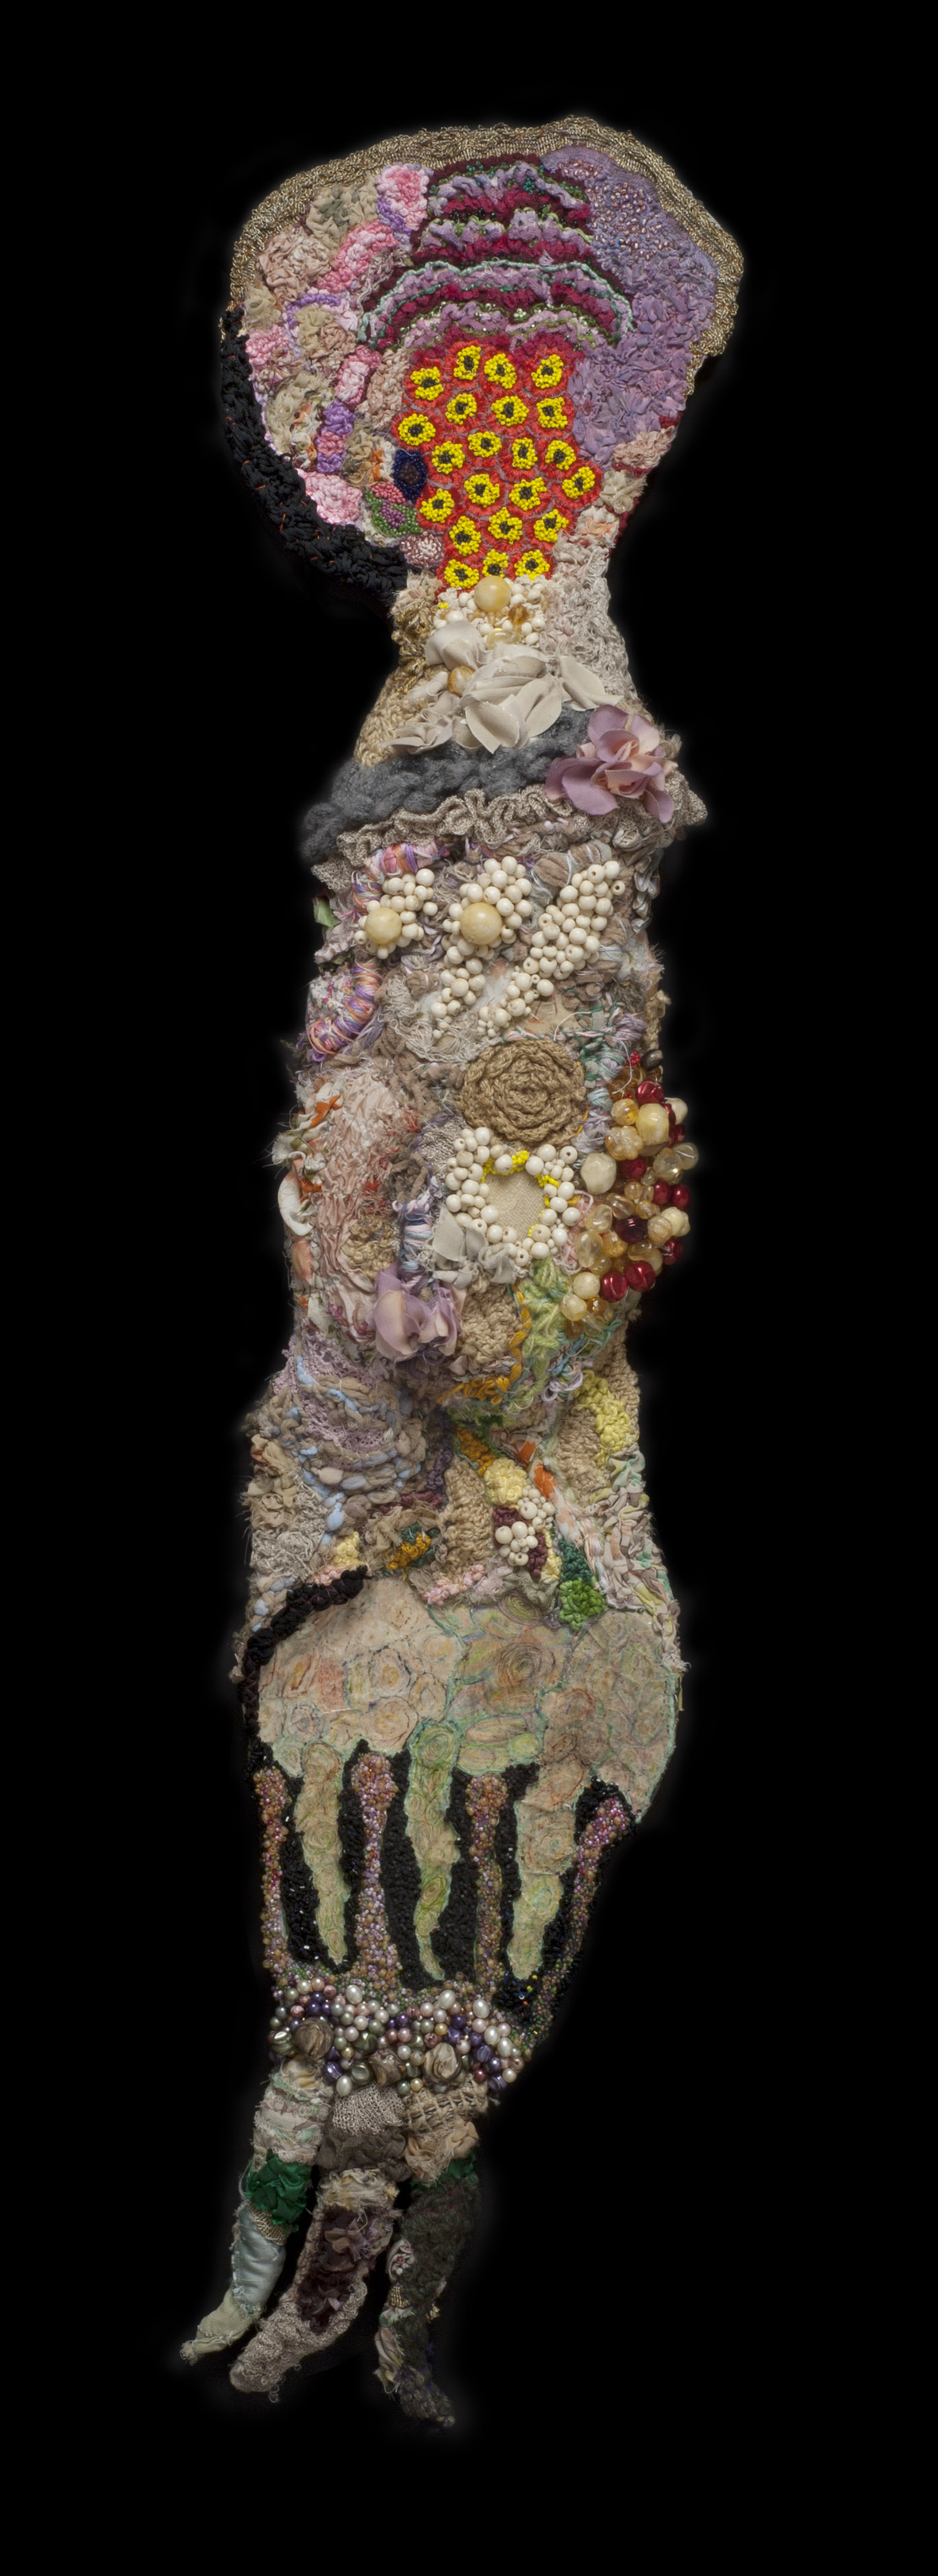 Sandra Sheehy    Untitled  , 2006 Cotton, wool, paper and beads 45 x 8 x 2.25 inches / 114.3 x 20.3 x 5.7 cm / SSe 49